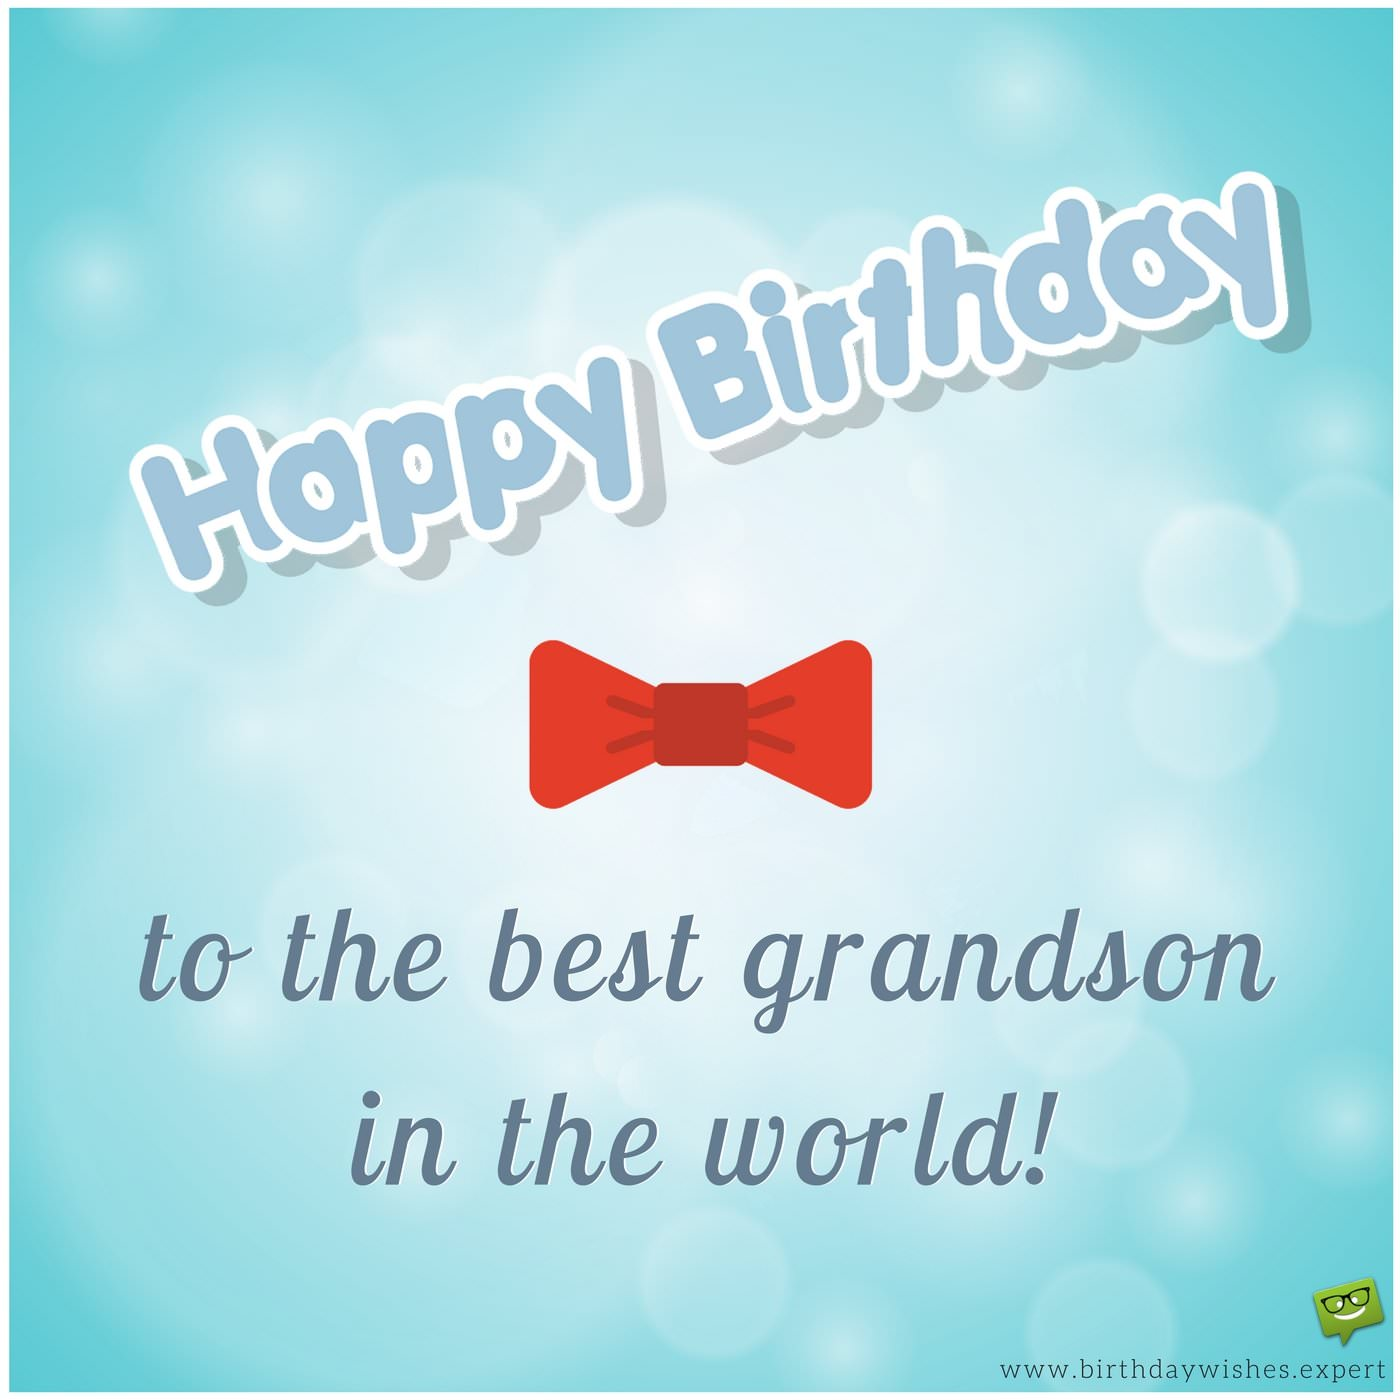 From your grandma grandpa birthday wishes for my grandson happy birthday to the best grandson in the world m4hsunfo